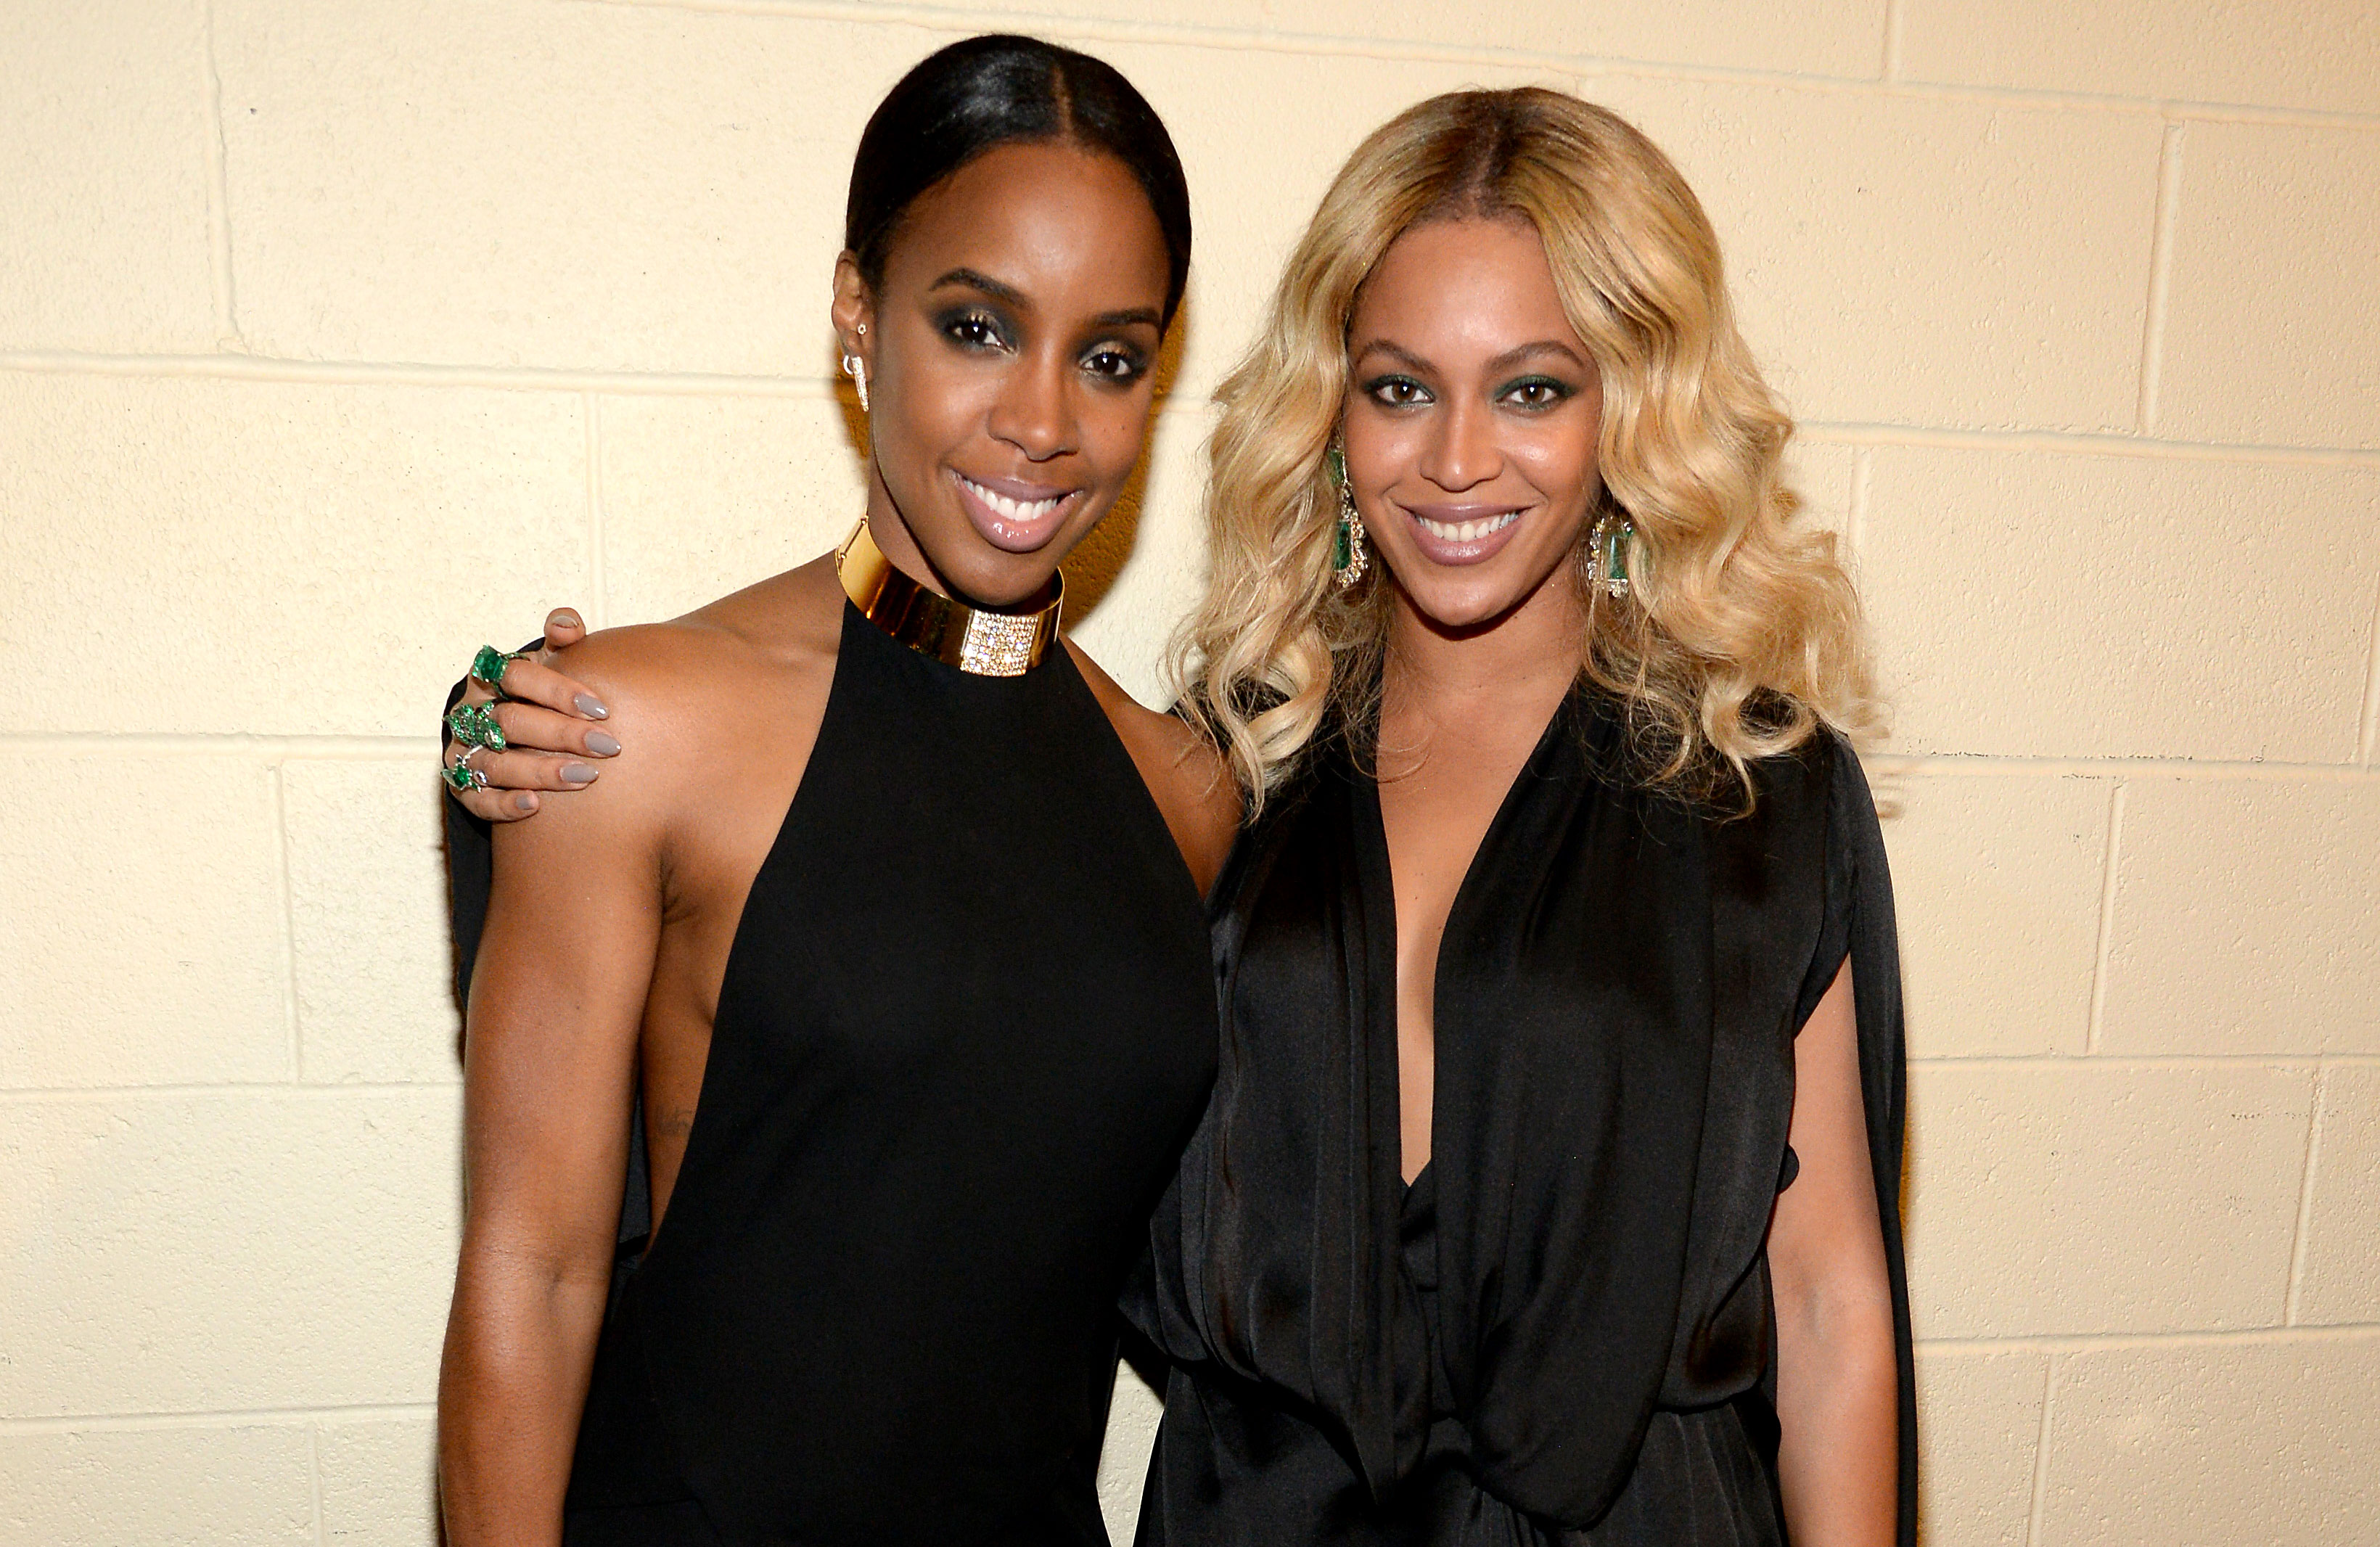 Watch Beyonce, Kelly Rowland Dance at Janet Jackson Concert